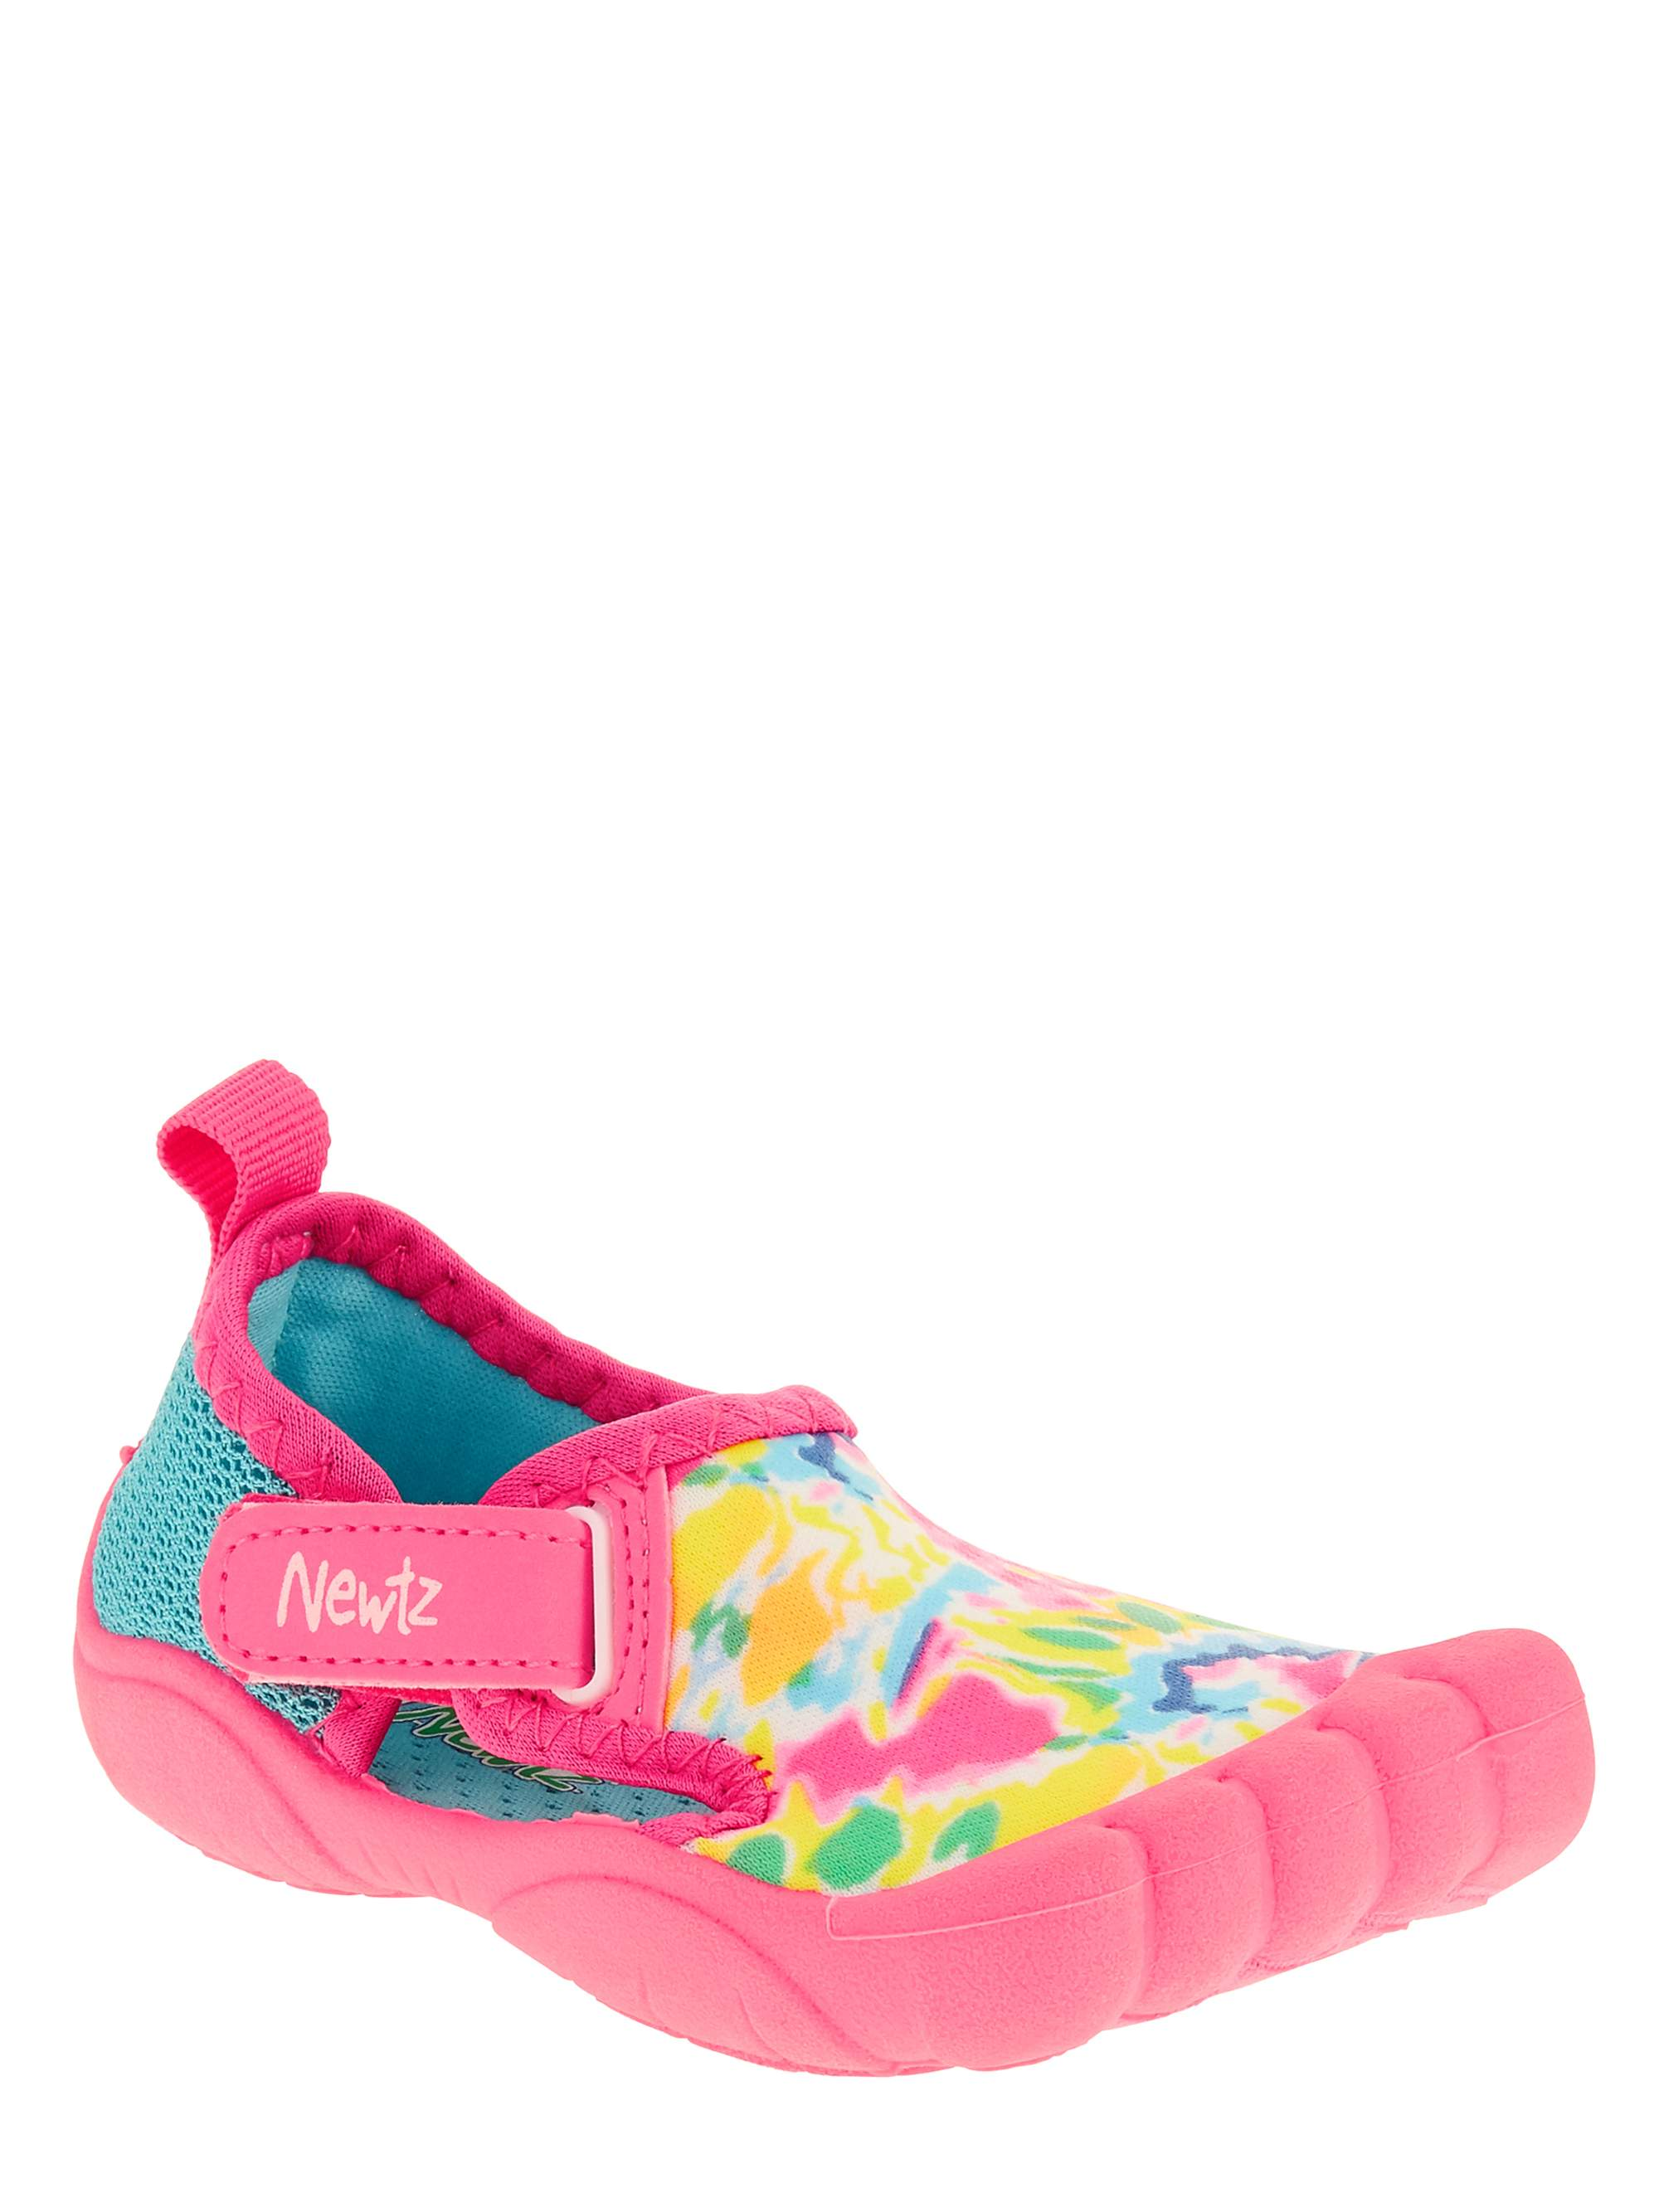 81835a209e58 Newtz - Girls Newtz Water Shoes - Walmart.com